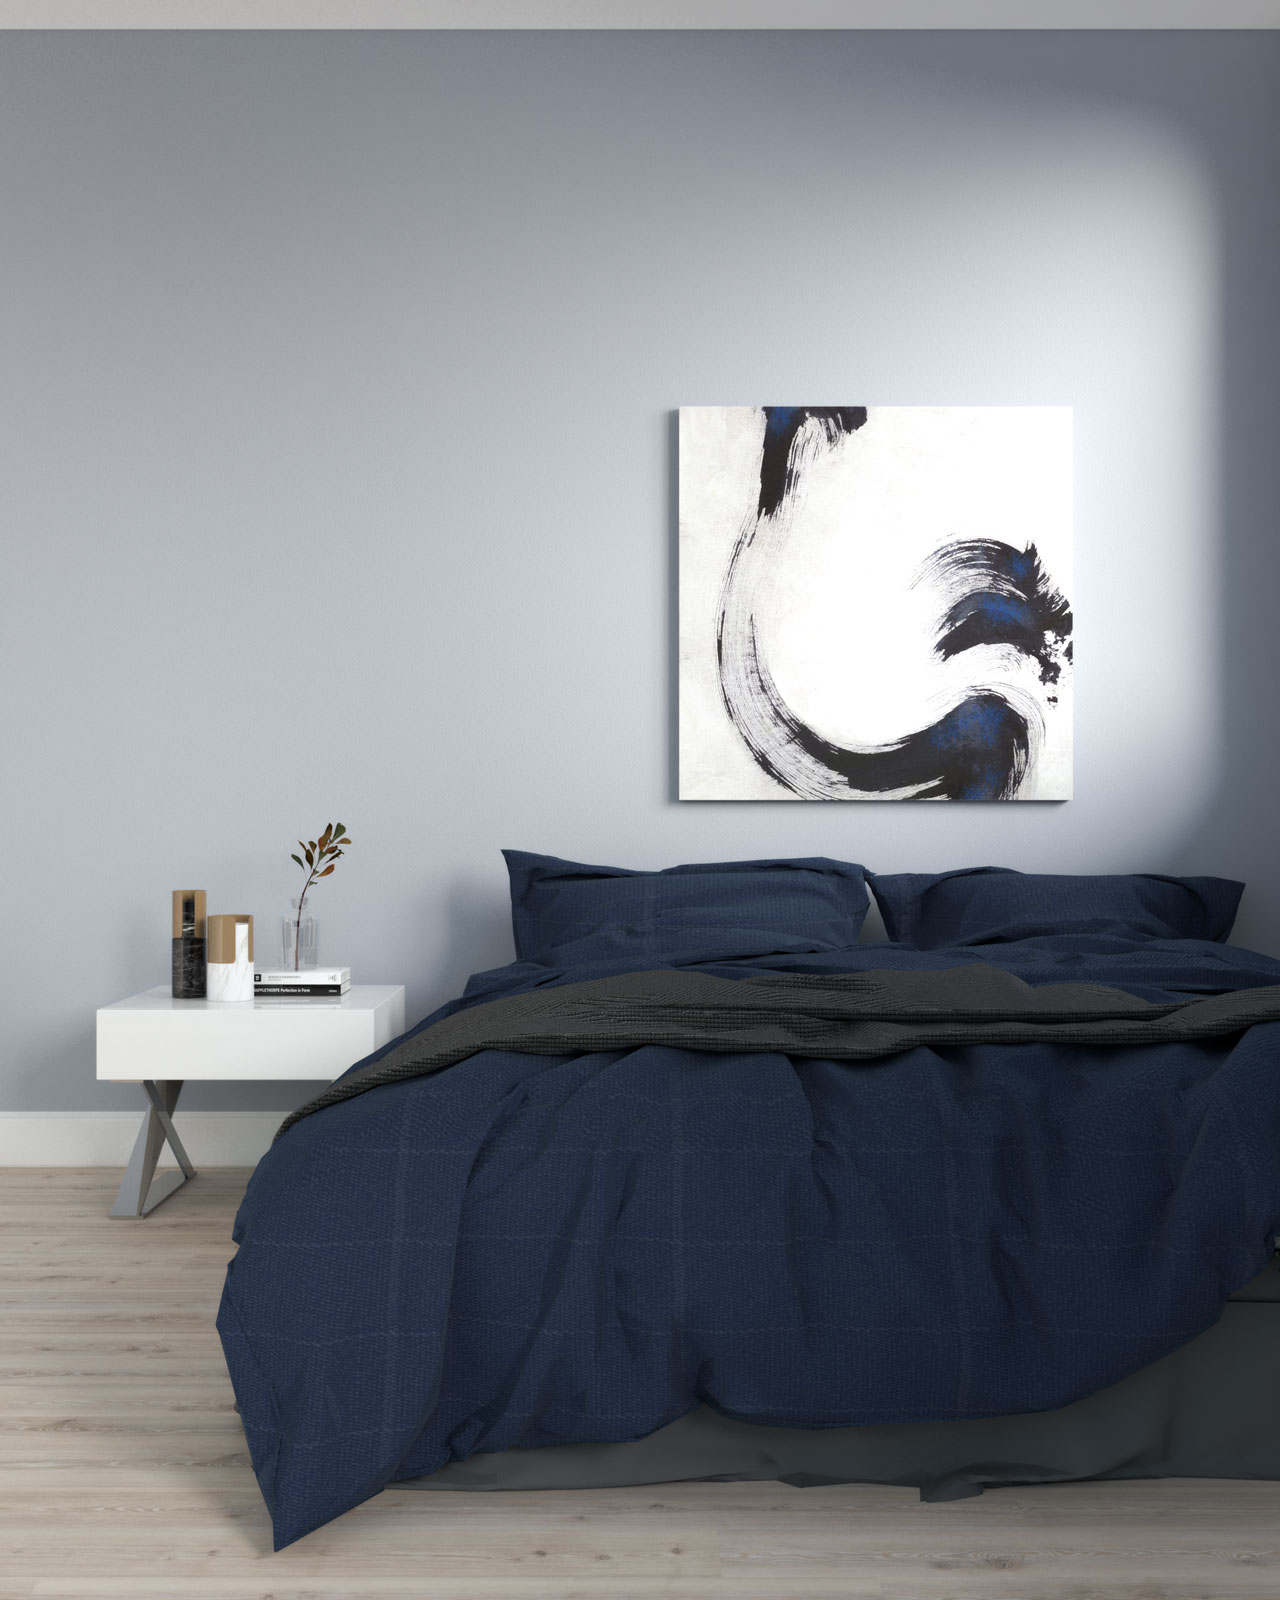 Slate blue walls with navy bedding